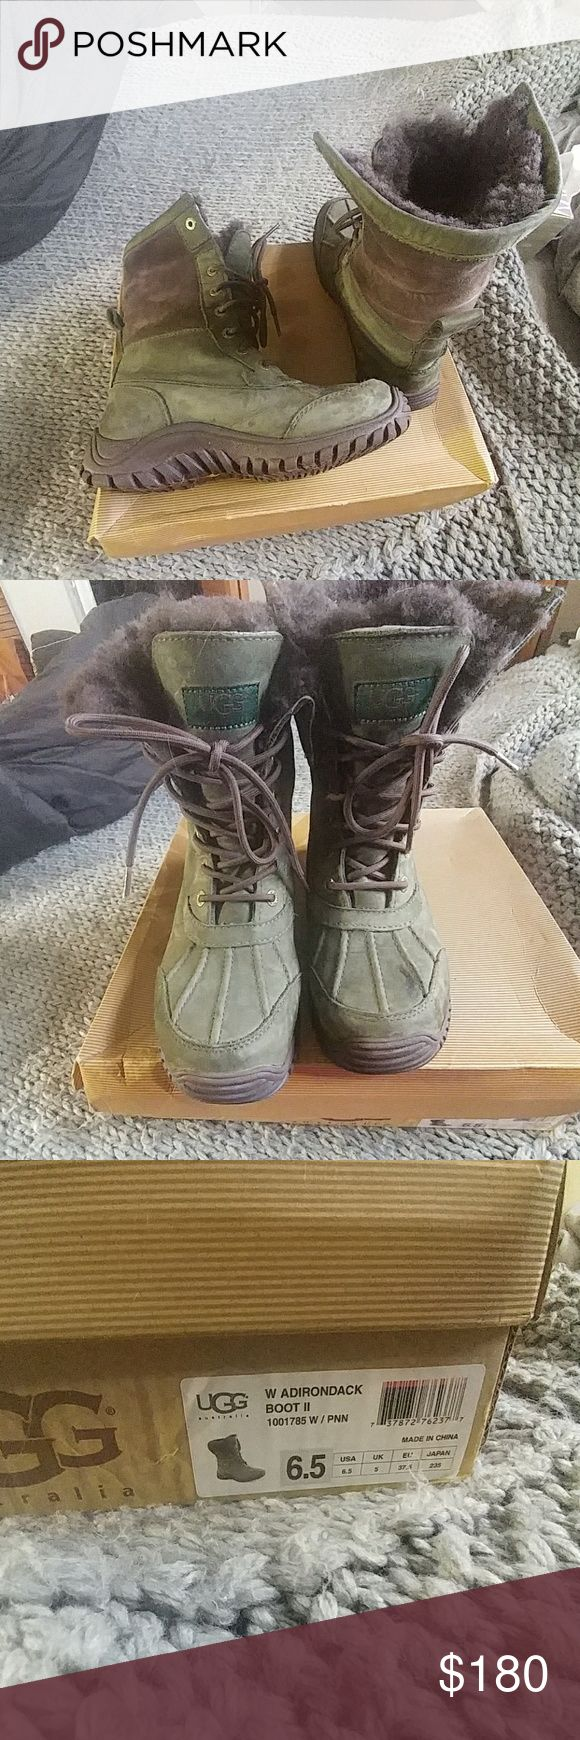 Ugg Adirondack boot ii- women's 6.5 in pineneedle Gently used Ugg Adirondack boot ii in a size 6.5. Pineneedle color is pretty rare and it kills me to give up these babies but i have to clean out a bit. Marks from wear and one small spot on the front. Waterproof and cozy!! Retail $225 UGG Shoes Winter & Rain Boots